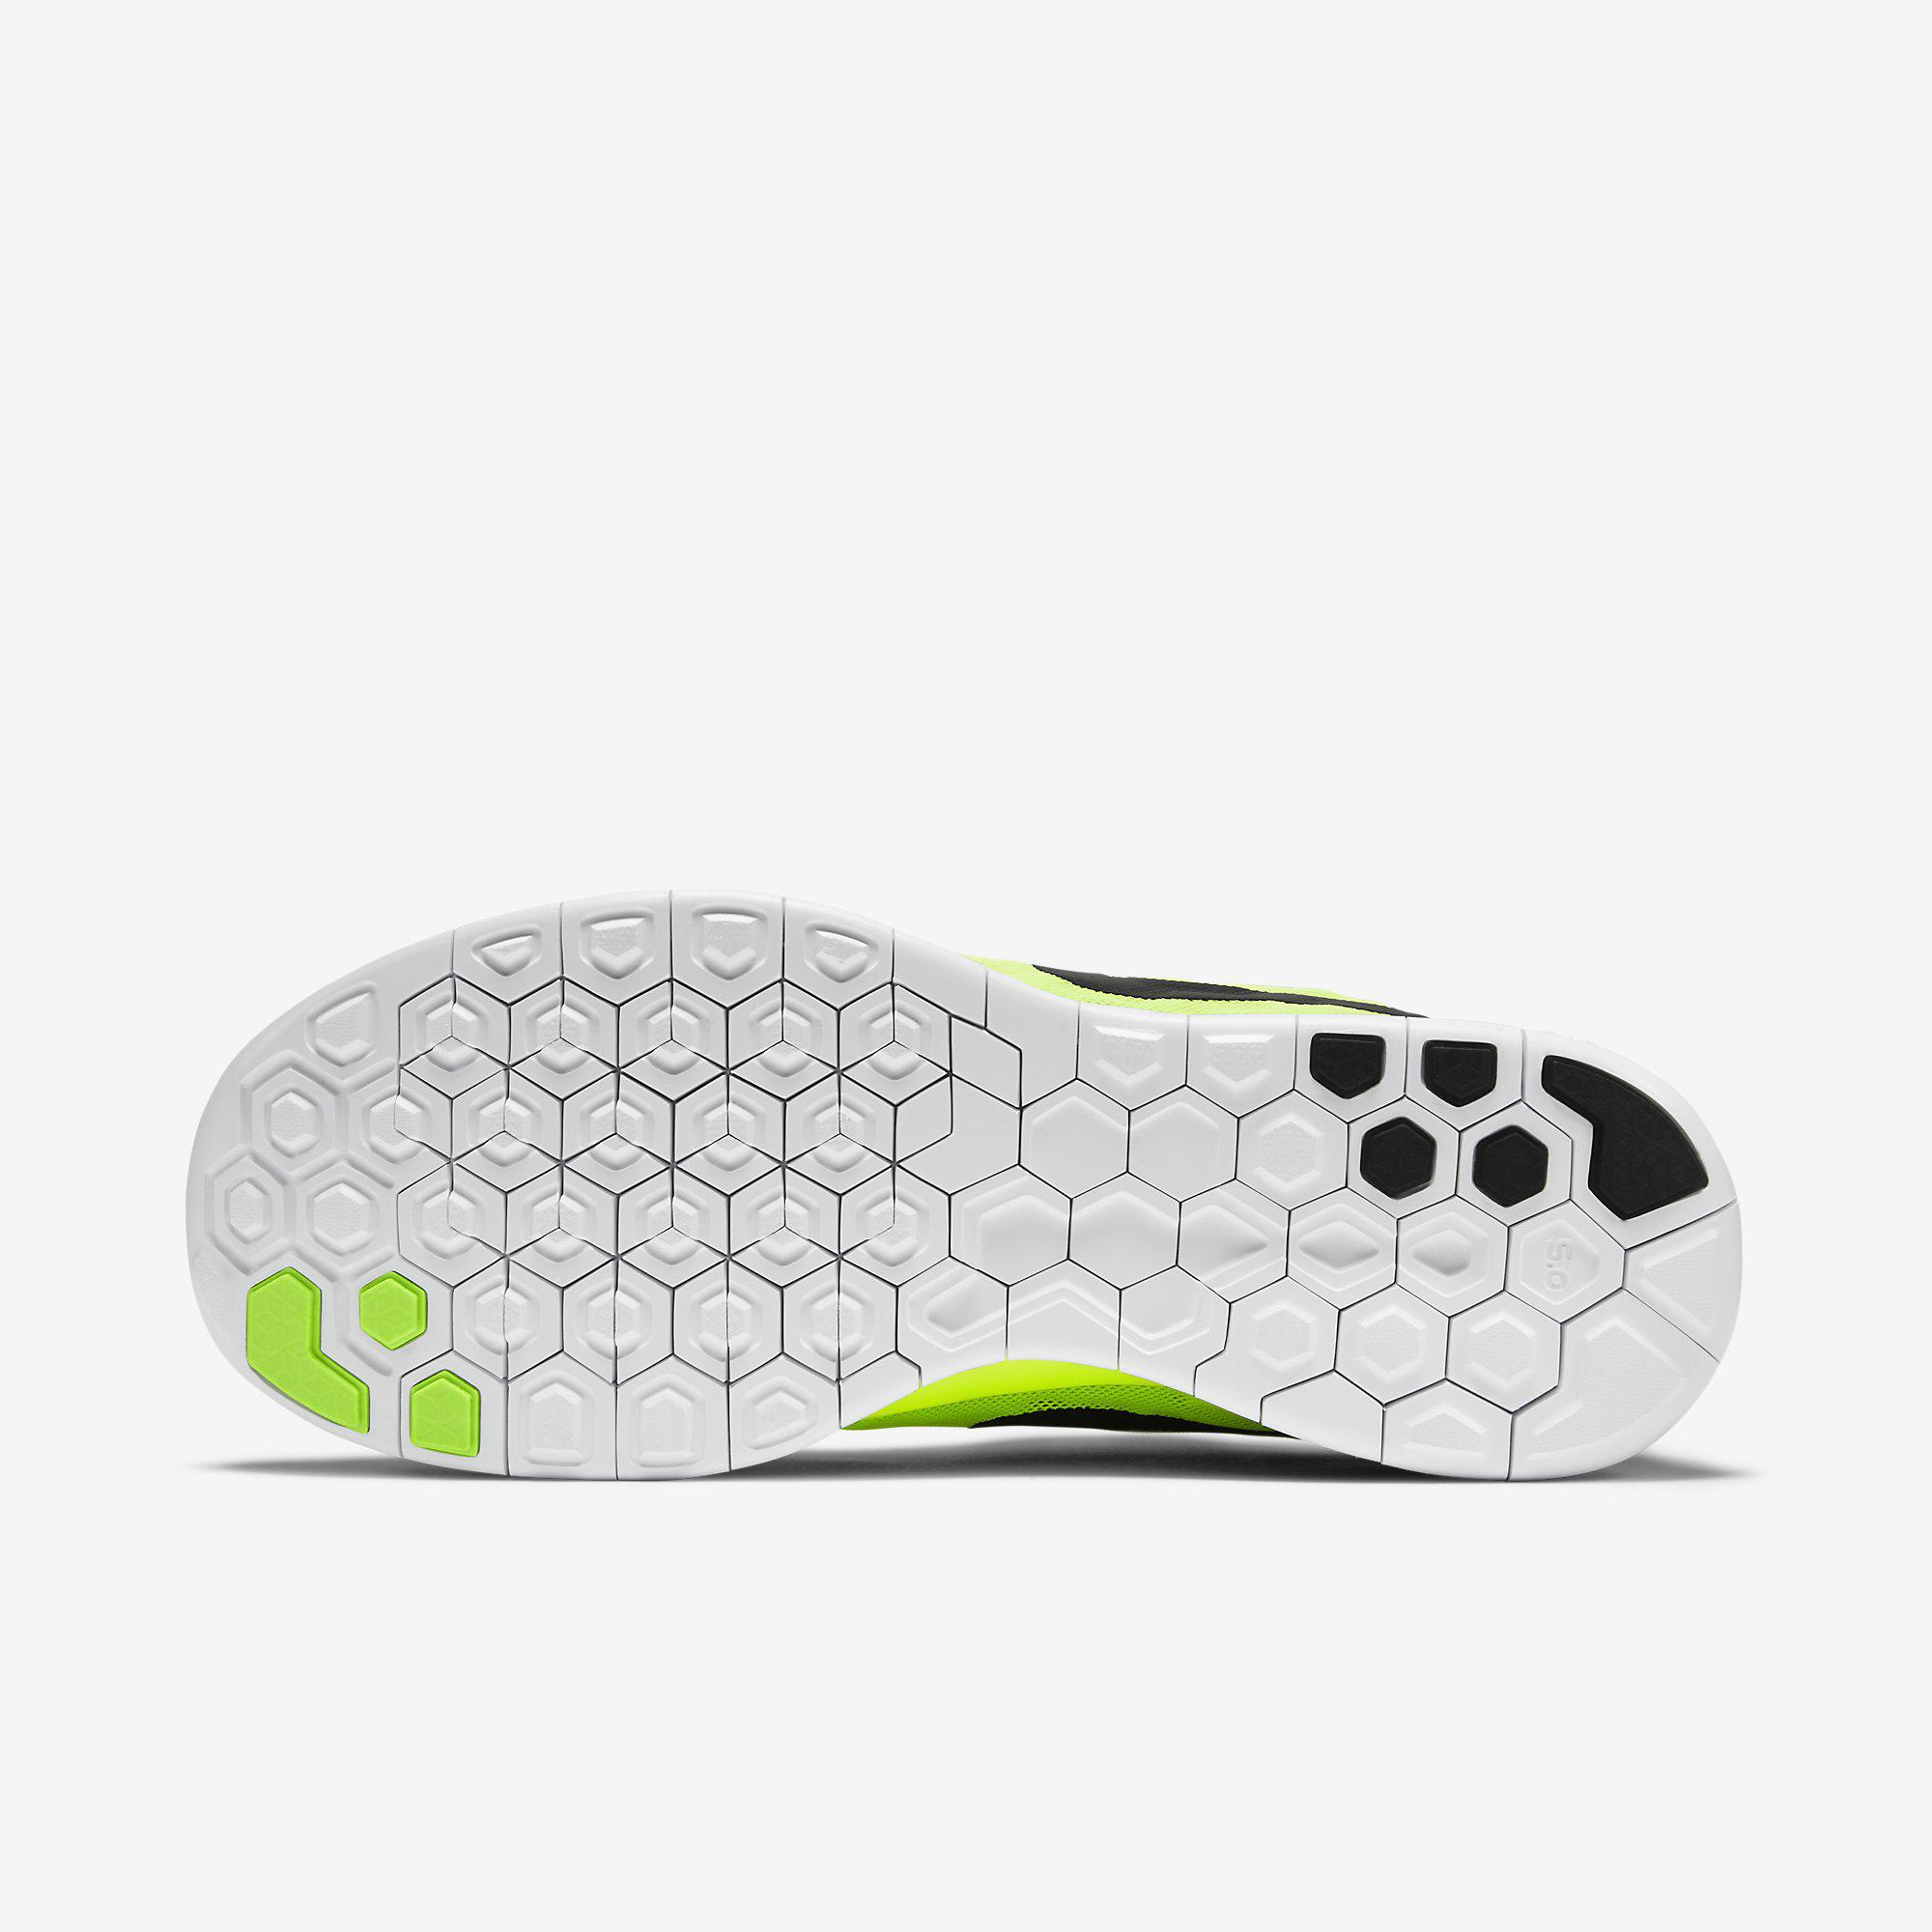 921fc0e03b76 Nike Mens Free 5.0+ Running Shoes - Volt Electric Green - Tennisnuts.com